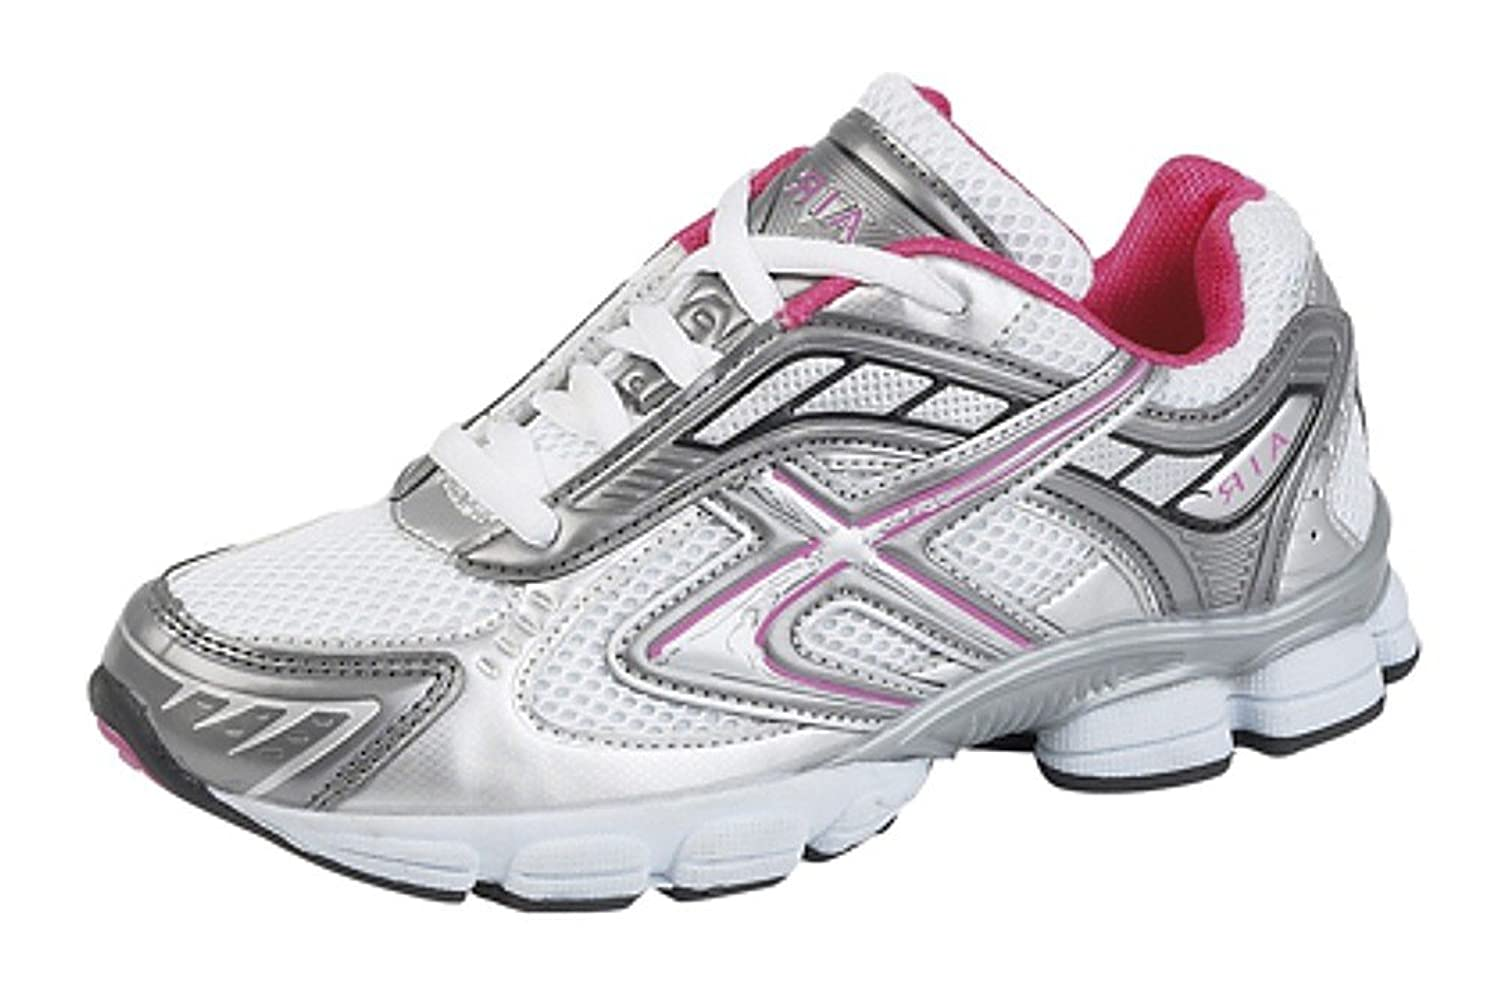 Dek 'Lady Air' shock absorbing running trainers